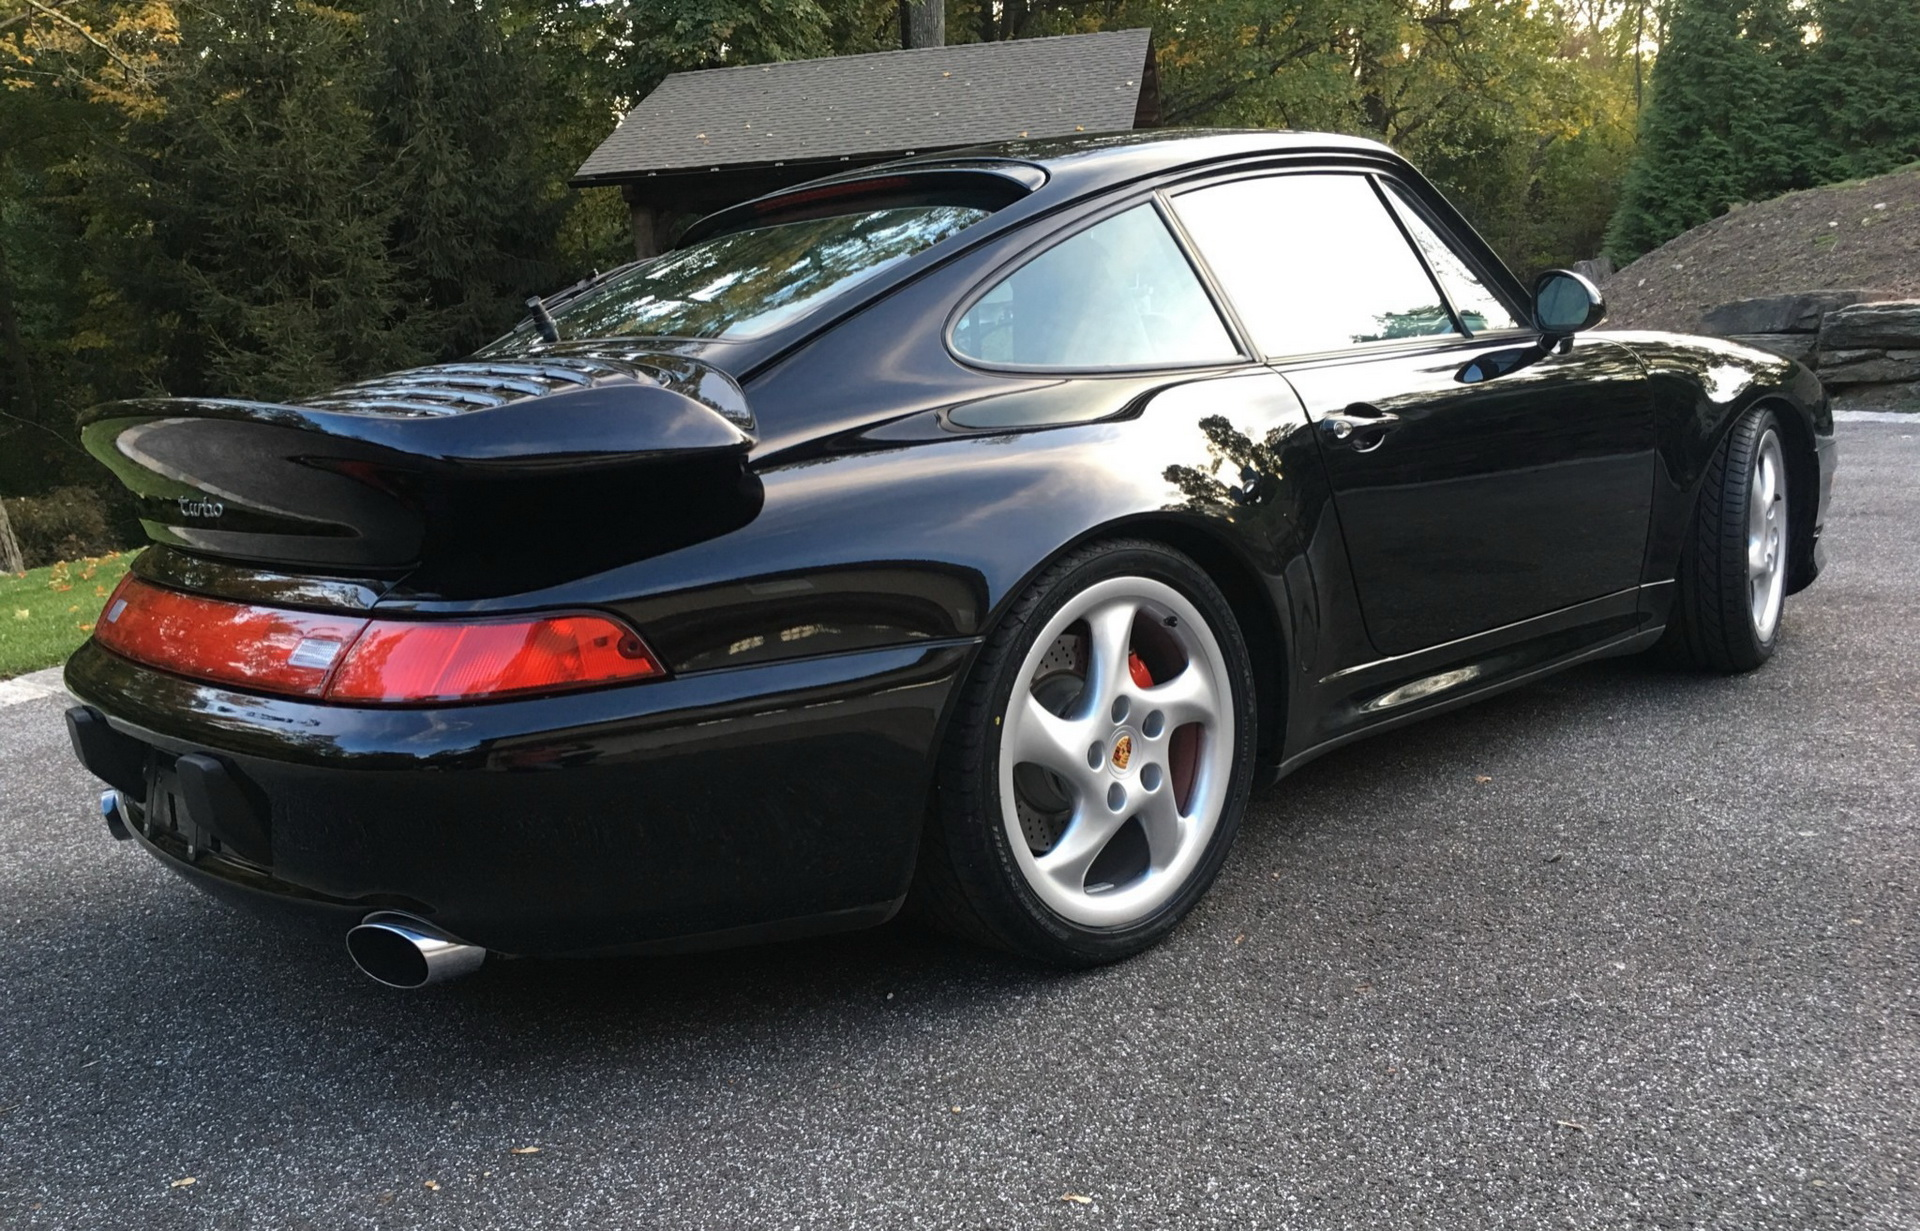 Porsche 993-as 911 Turbo 1996